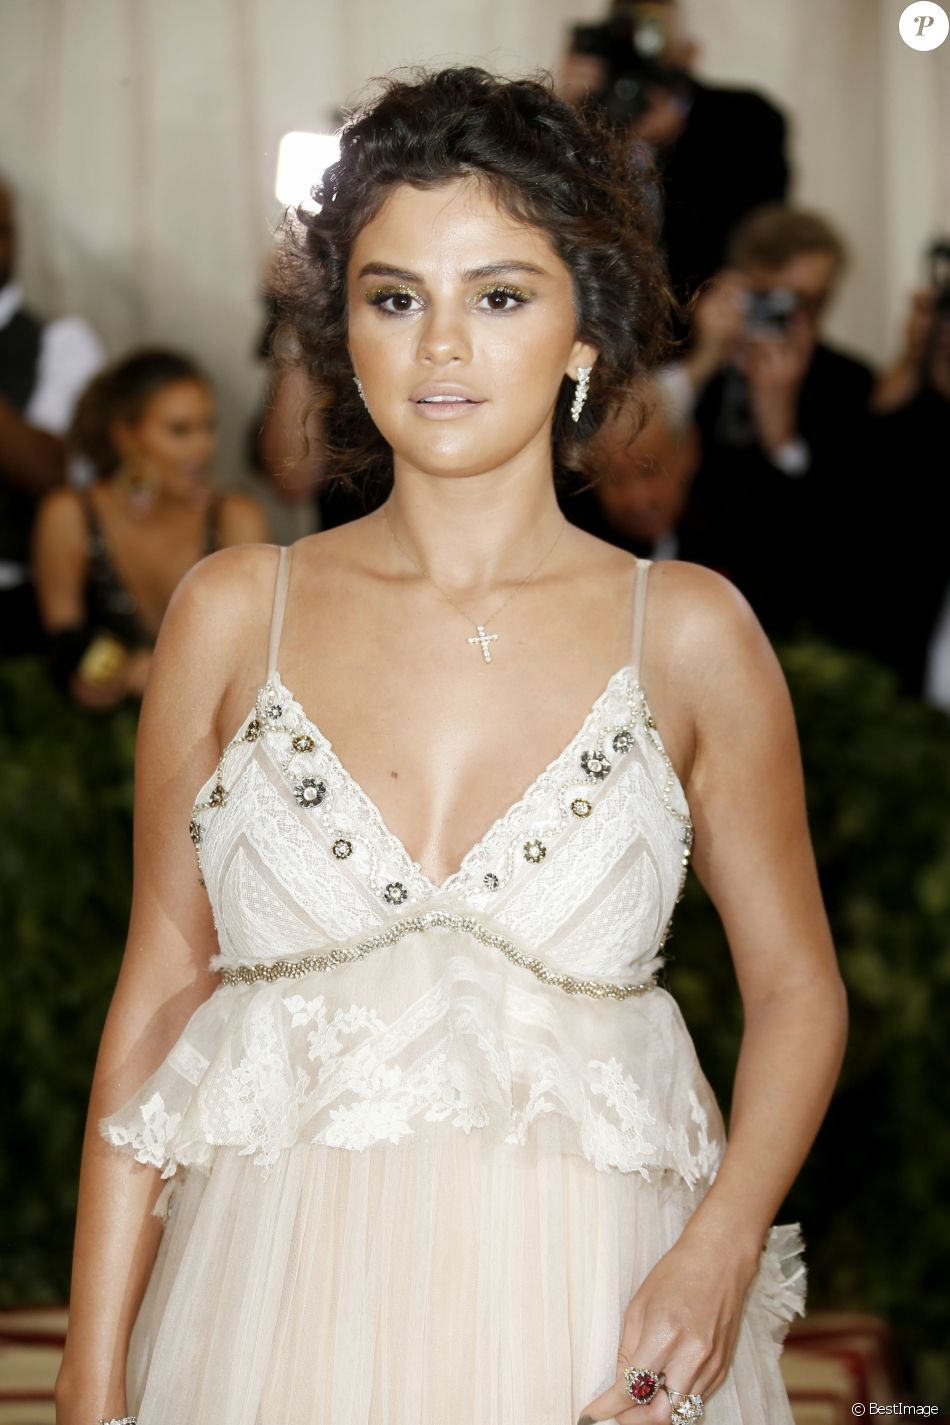 Selena Gomez Met Gala (Met Ball, Costume Institute Benefit) 2018 célébrant l'ouverture de l'exposition Heavenly Bodies: Fashion and the Catholic Imagination, au Metropolitan Museum of Art à New York, le 7 mai 2018. © Charles Guerin / BestimageUSA